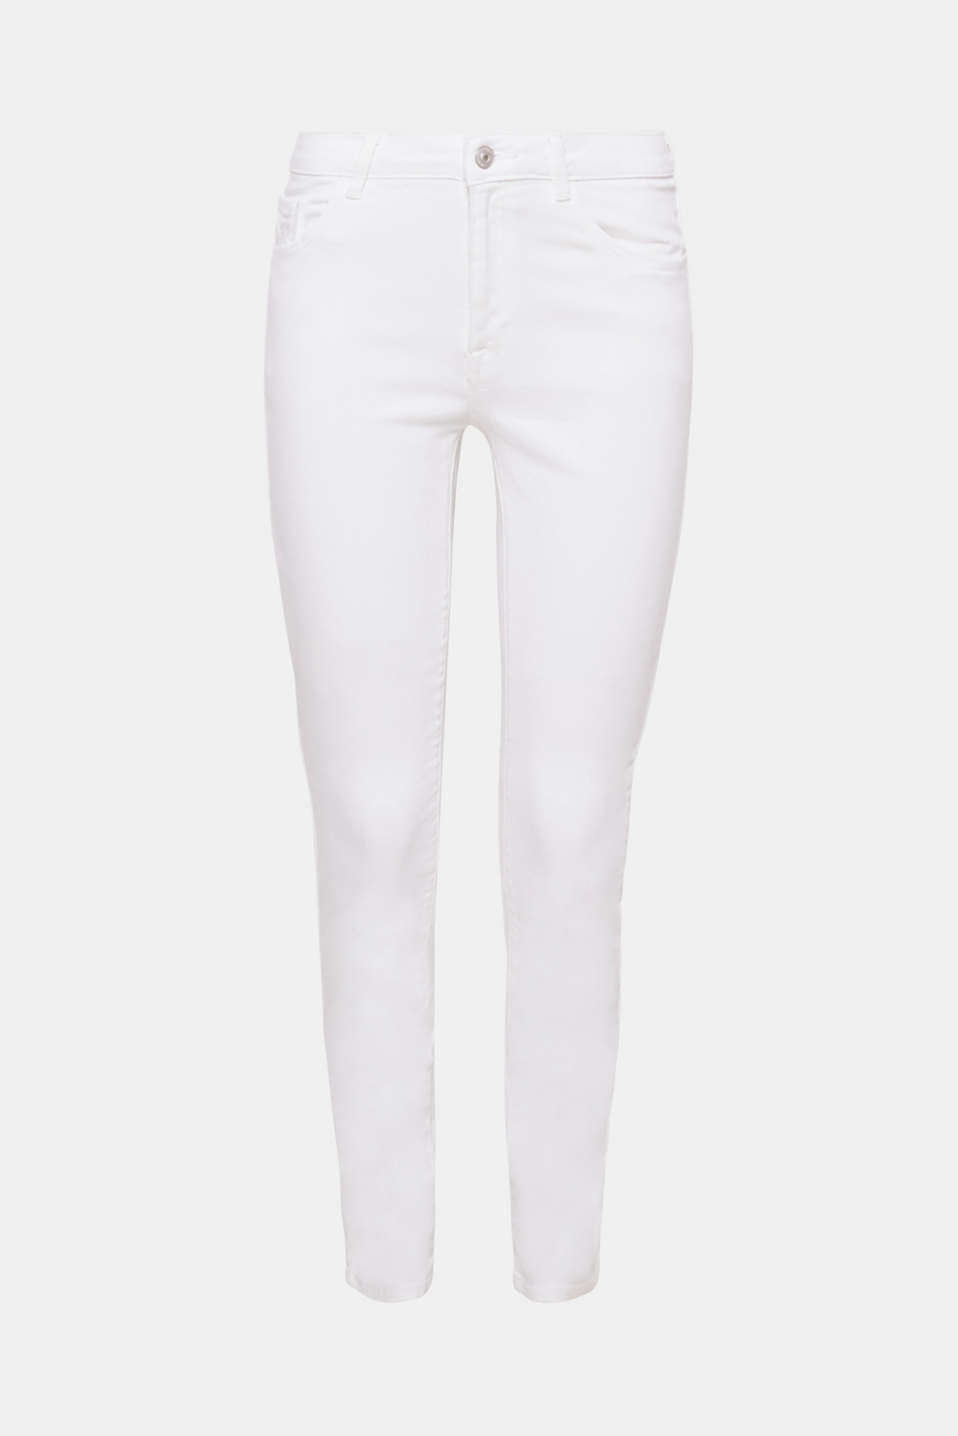 These fashionable cropped jeans are the perfect styling partner in clean white denim with added stretch.